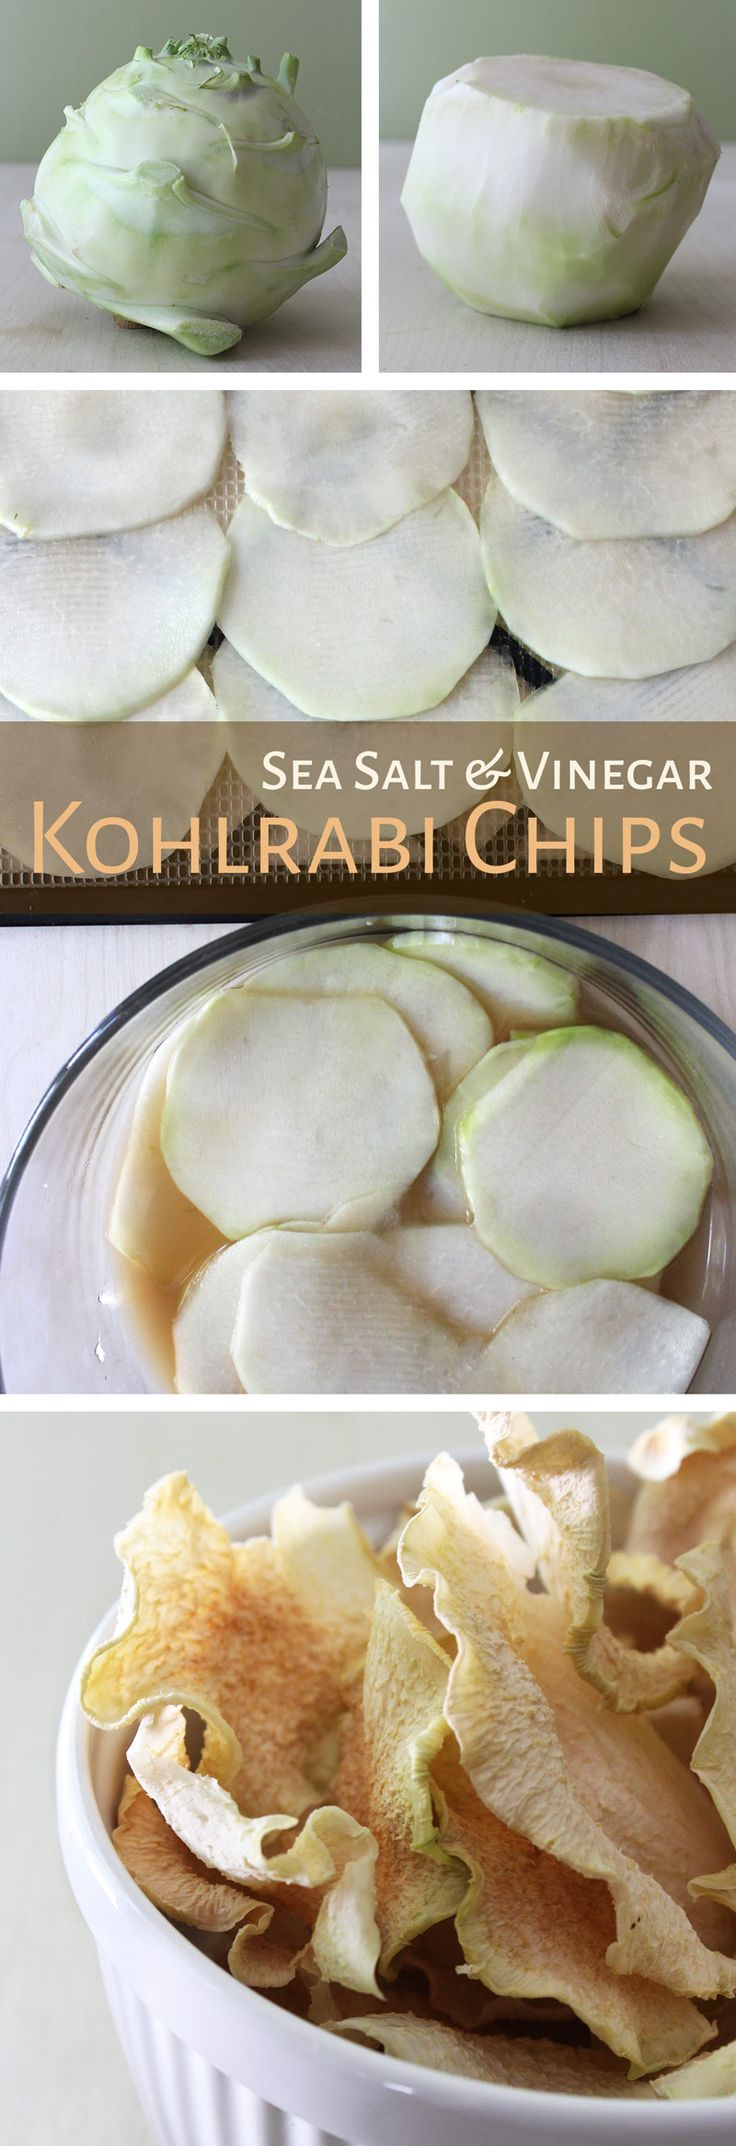 Dehydrated Sea Salt & Vinegar Chips - yum trying these tonight with a bunch of kohlrabi from my garden!